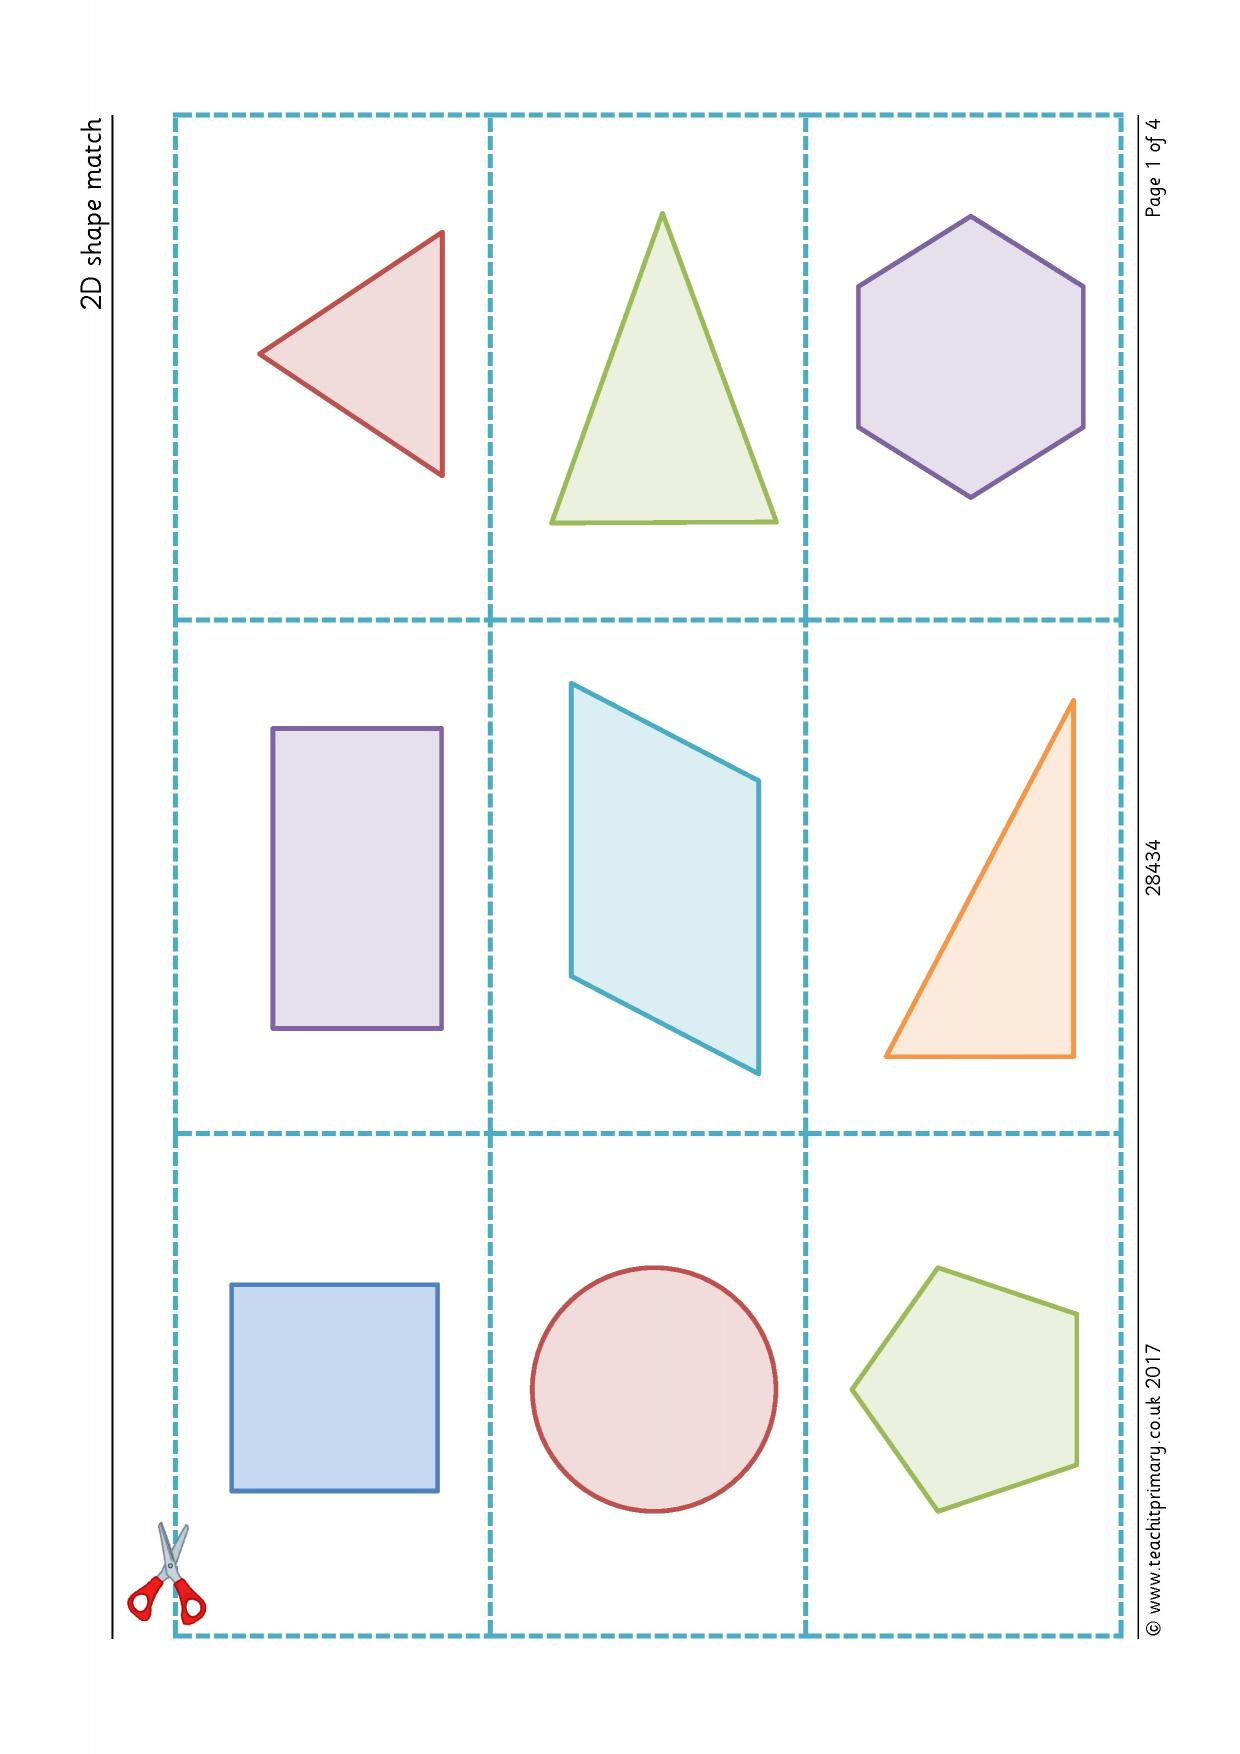 Reception and KS  geometry resources